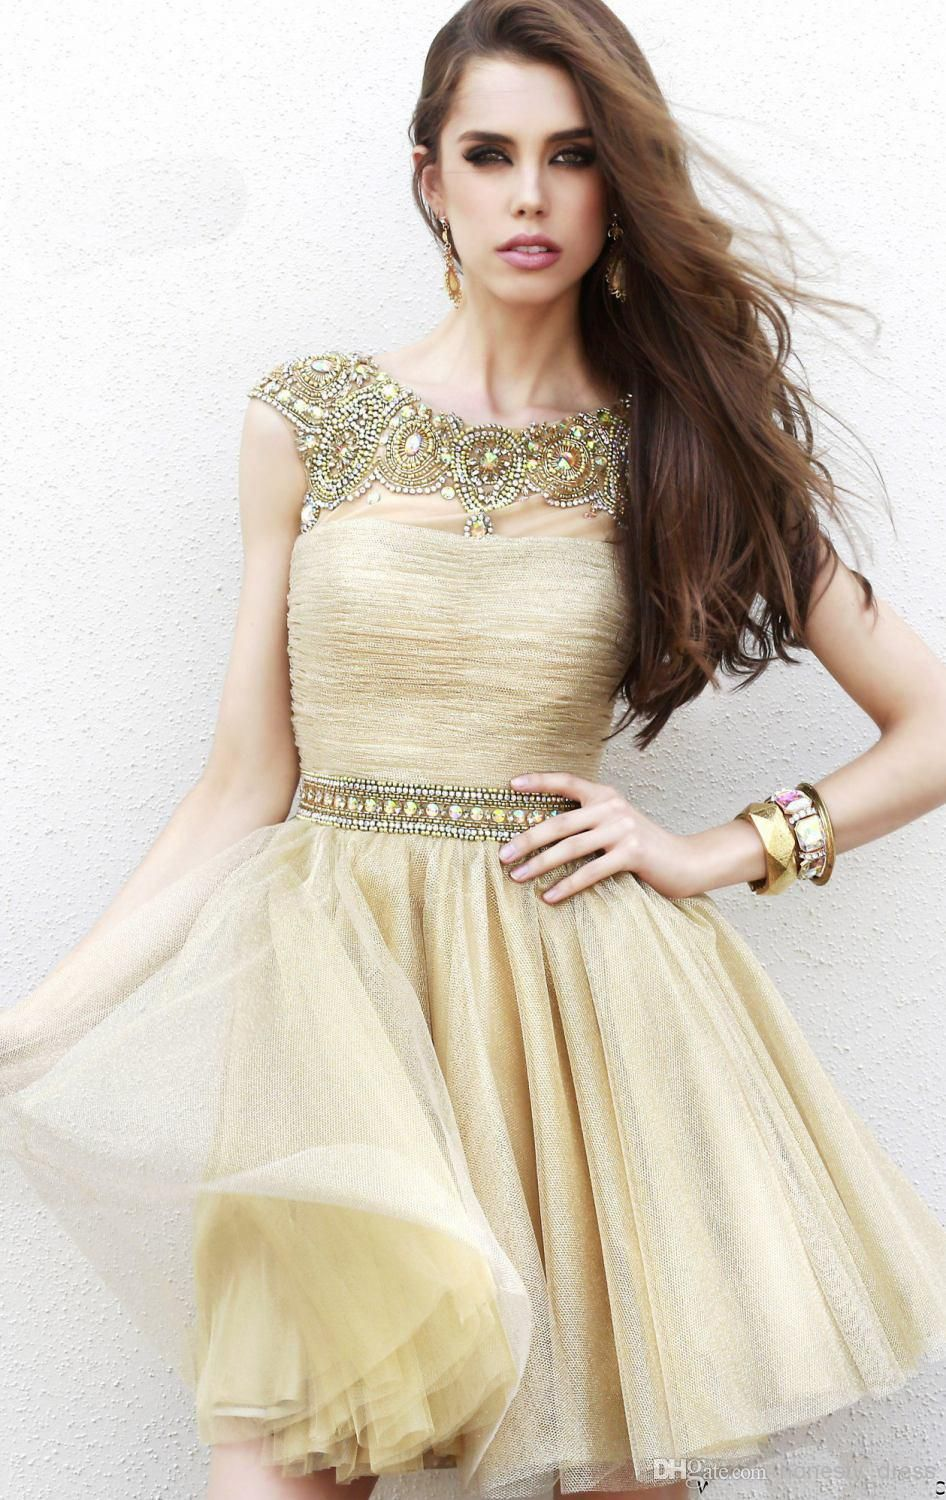 HOMECOMING DRESS http://www.dhgate.com/product/2014-champagne-homecoming-dress-tulle-sheer/207981020.html.html